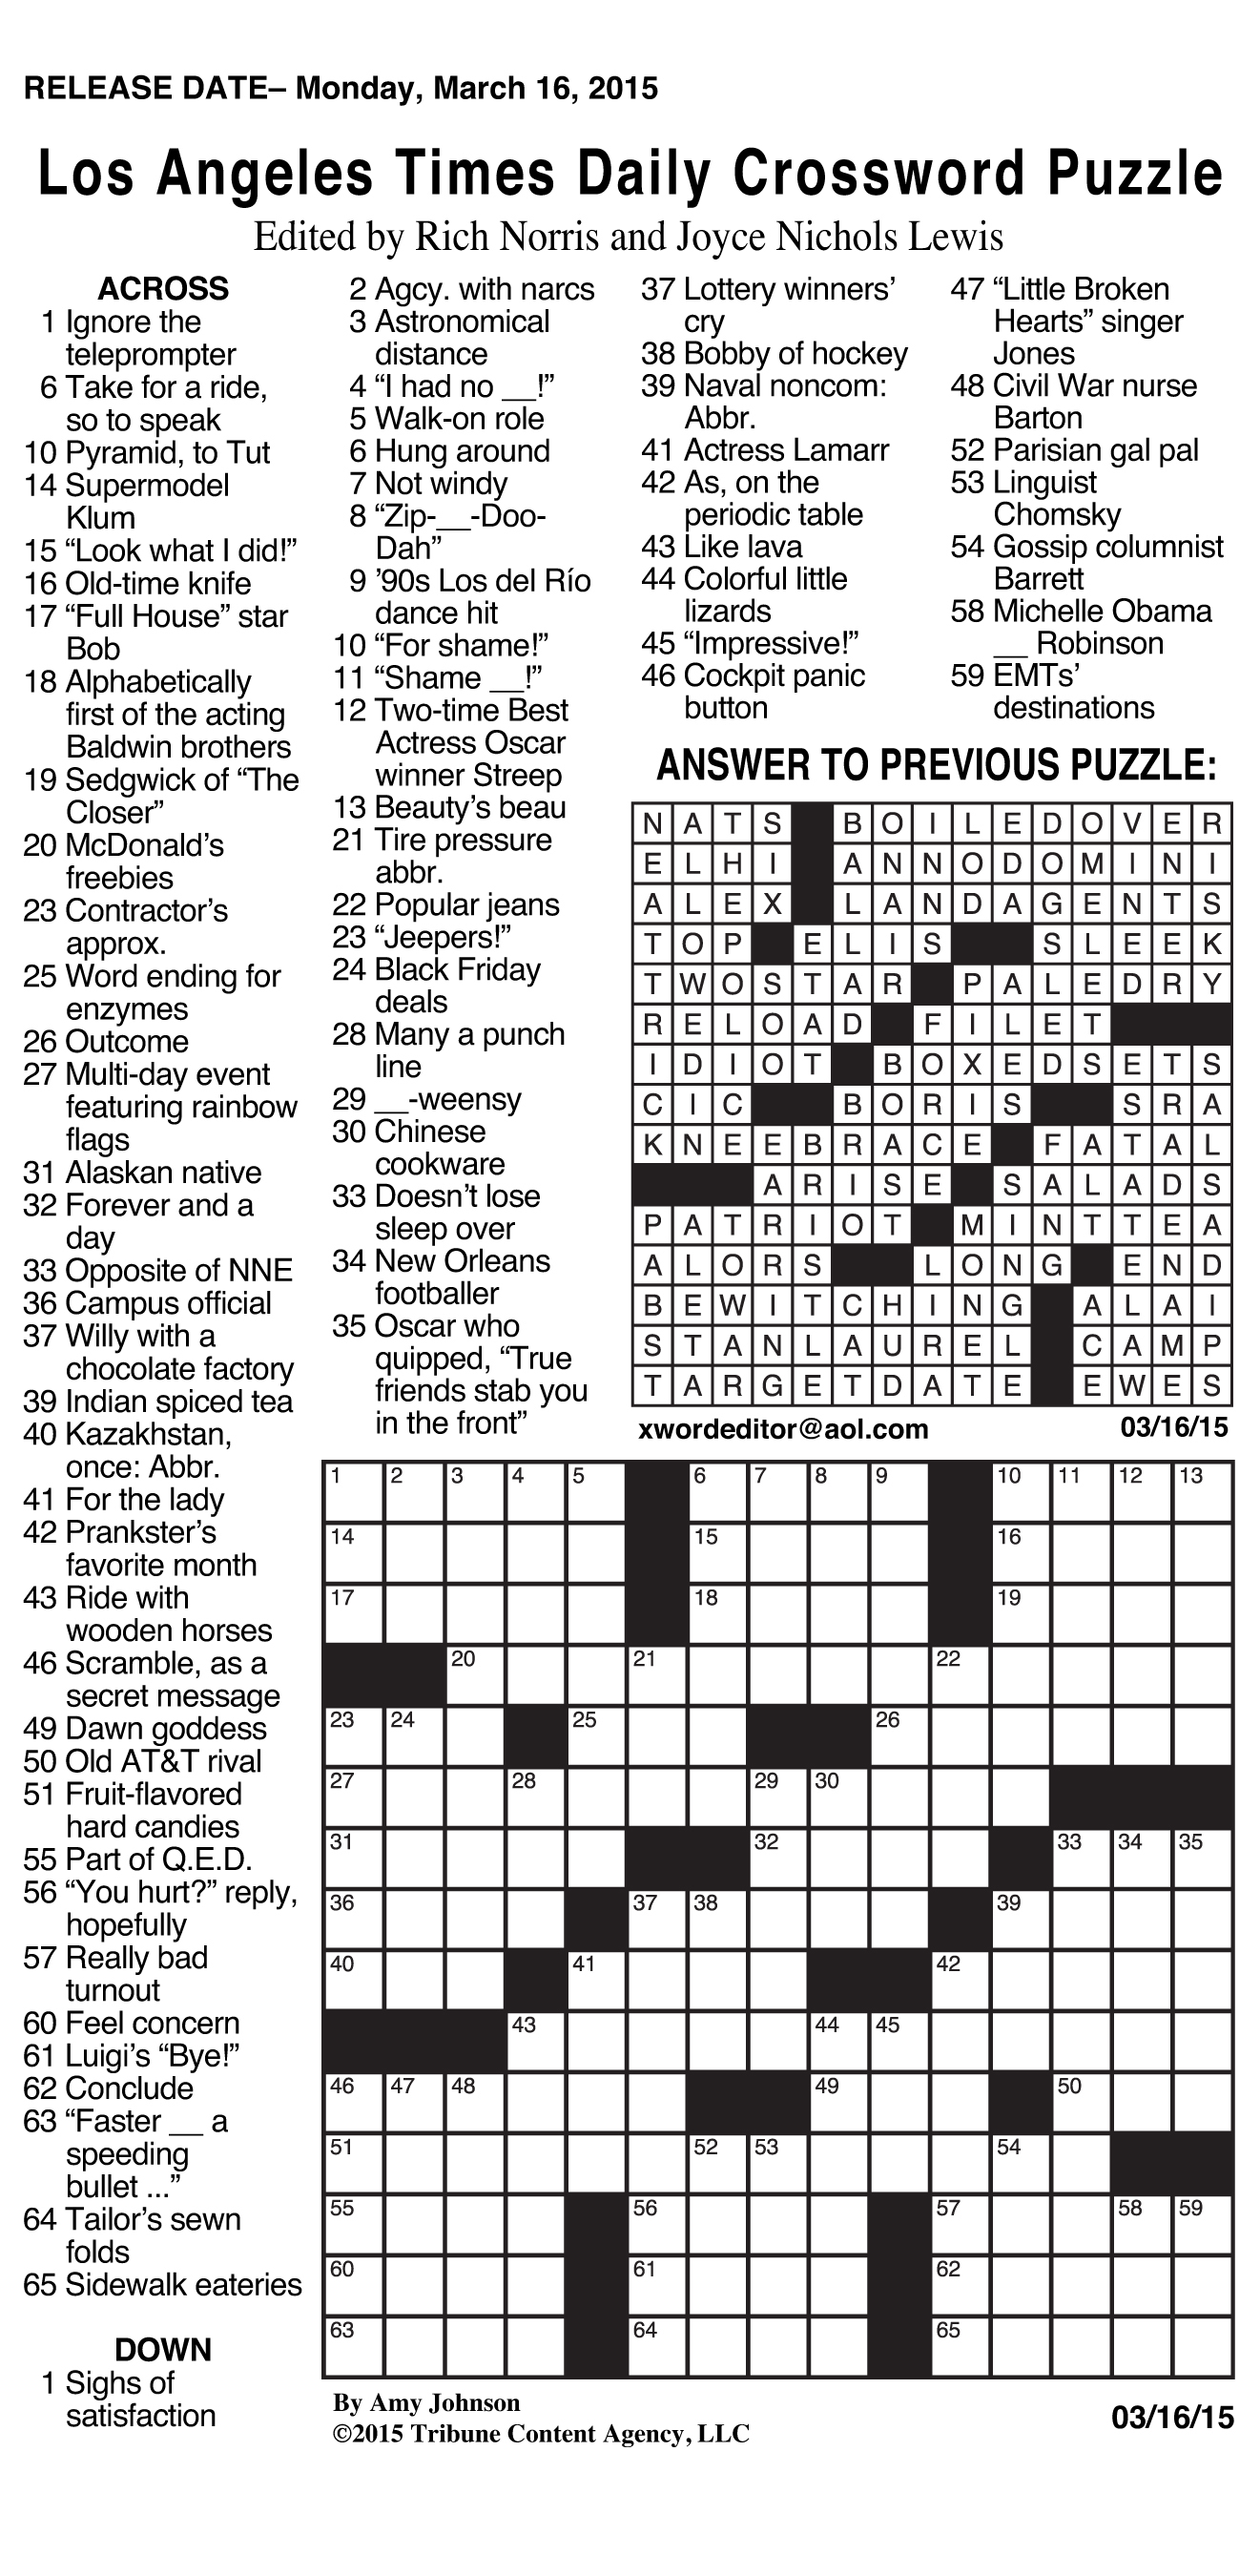 Sample Of Los Angeles Times Daily Crossword Puzzle | Tribune Content - La Times Printable Crossword 2015